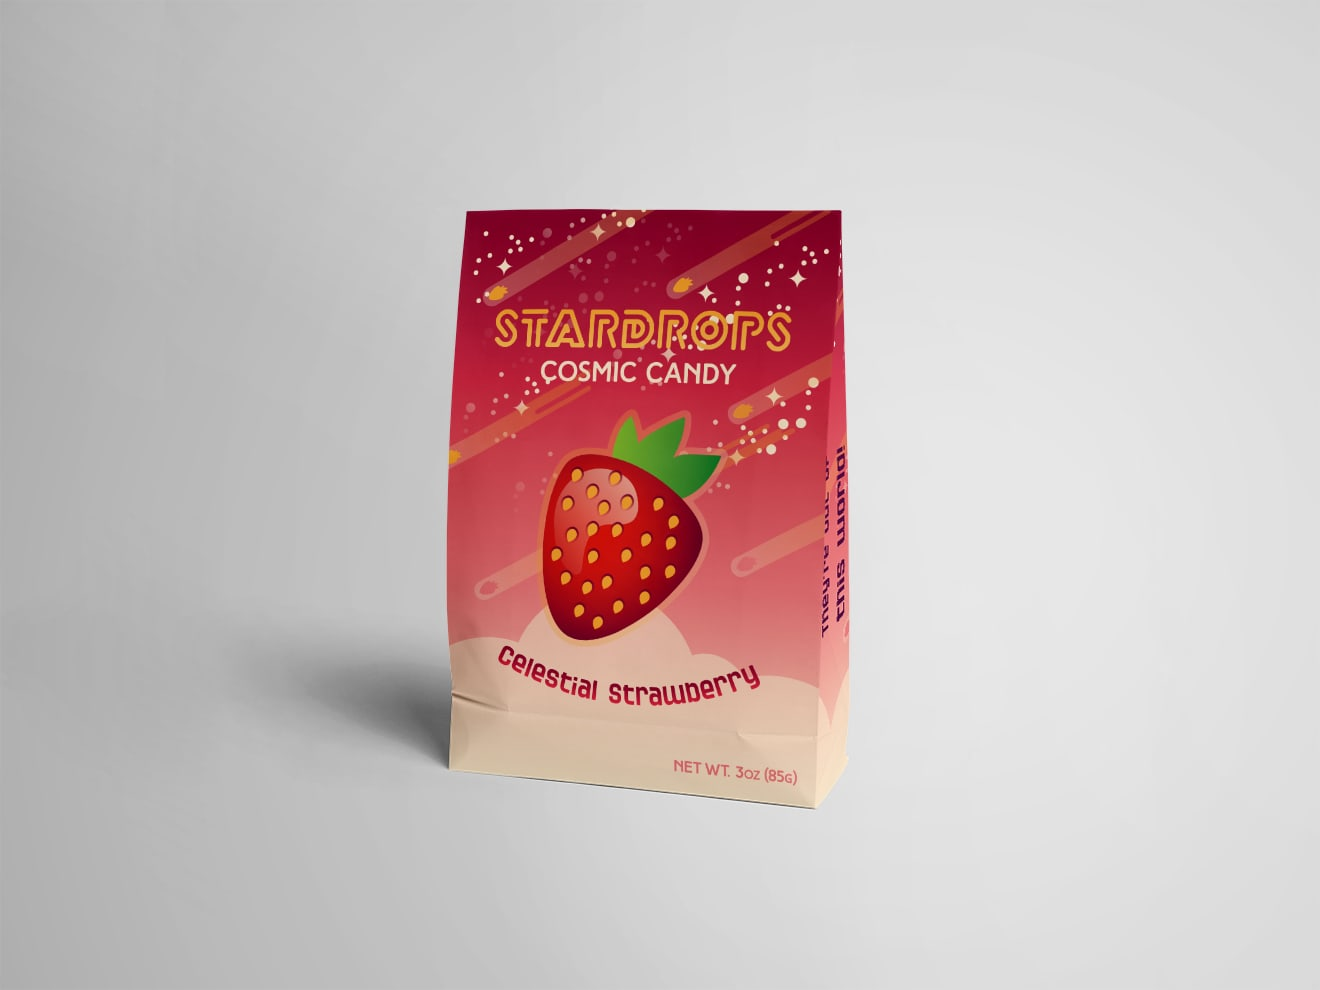 Stardrops Cosmic Candy Package & Page Designs